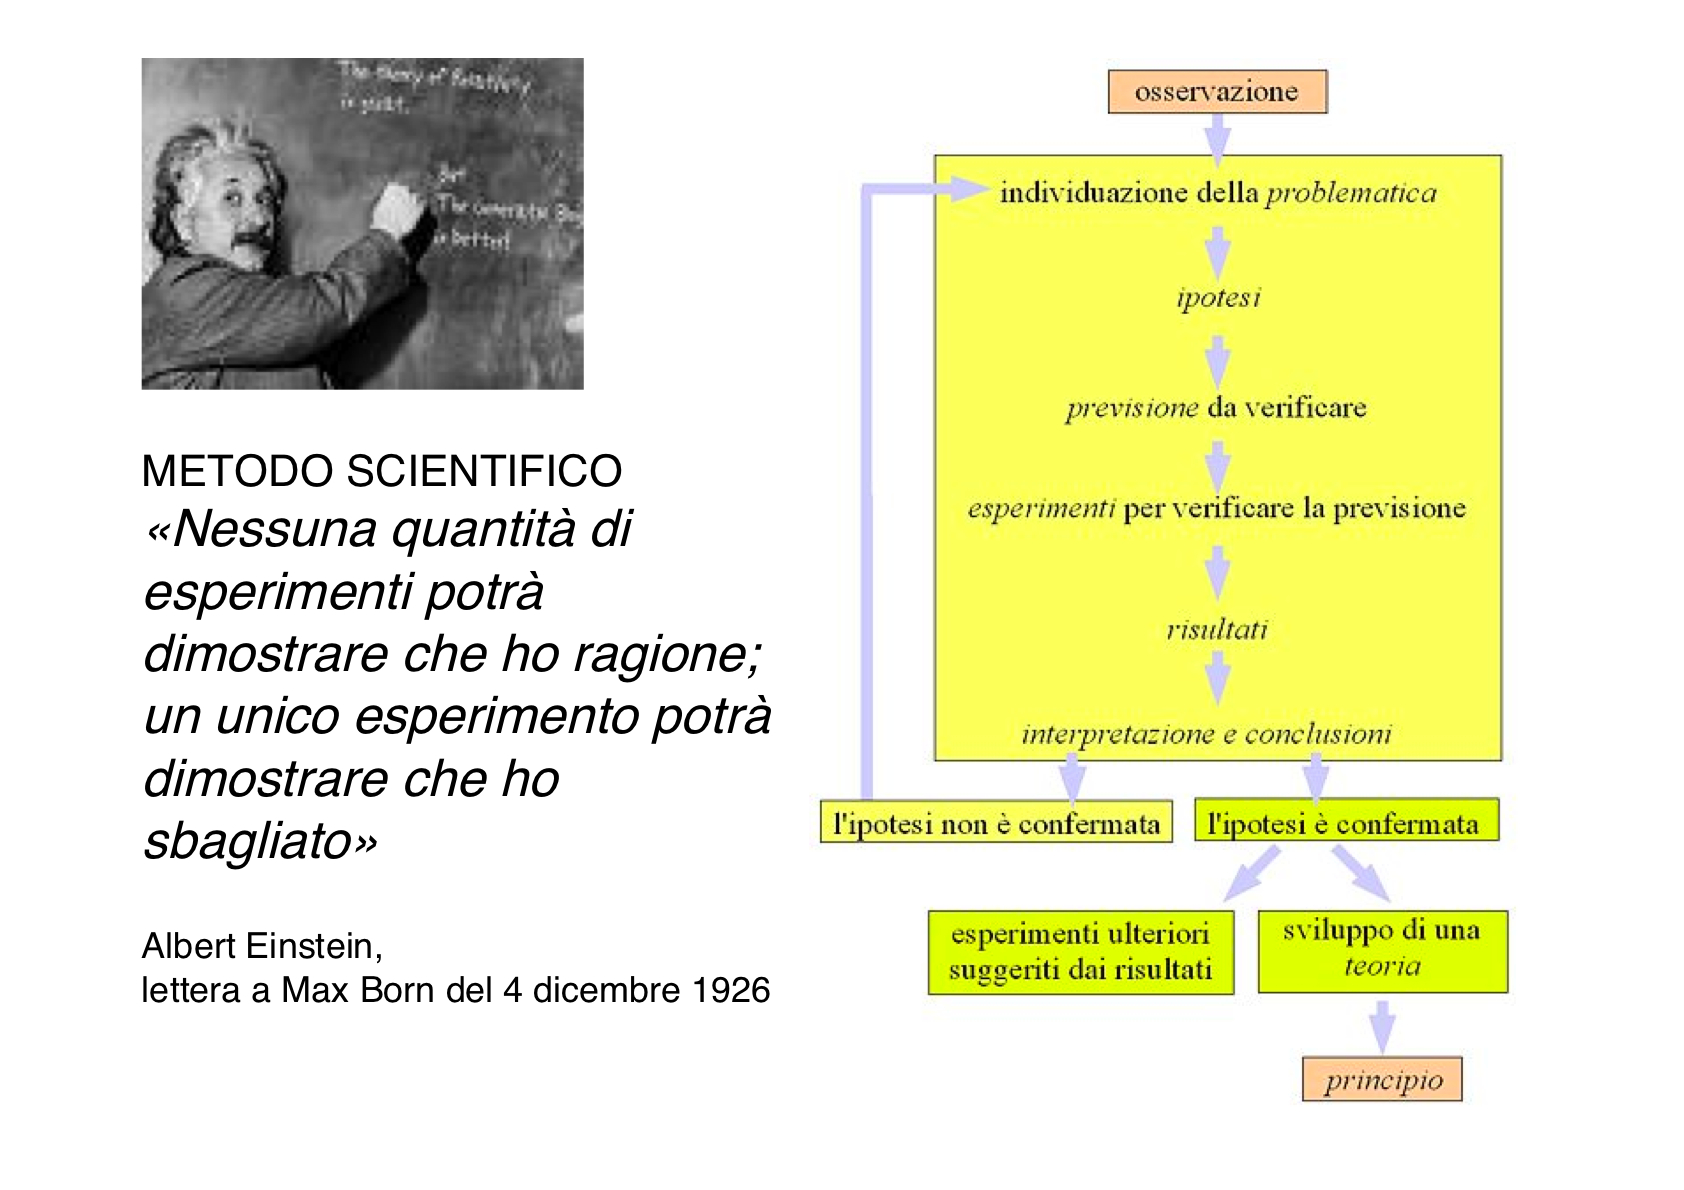 metodo-scientifico-1